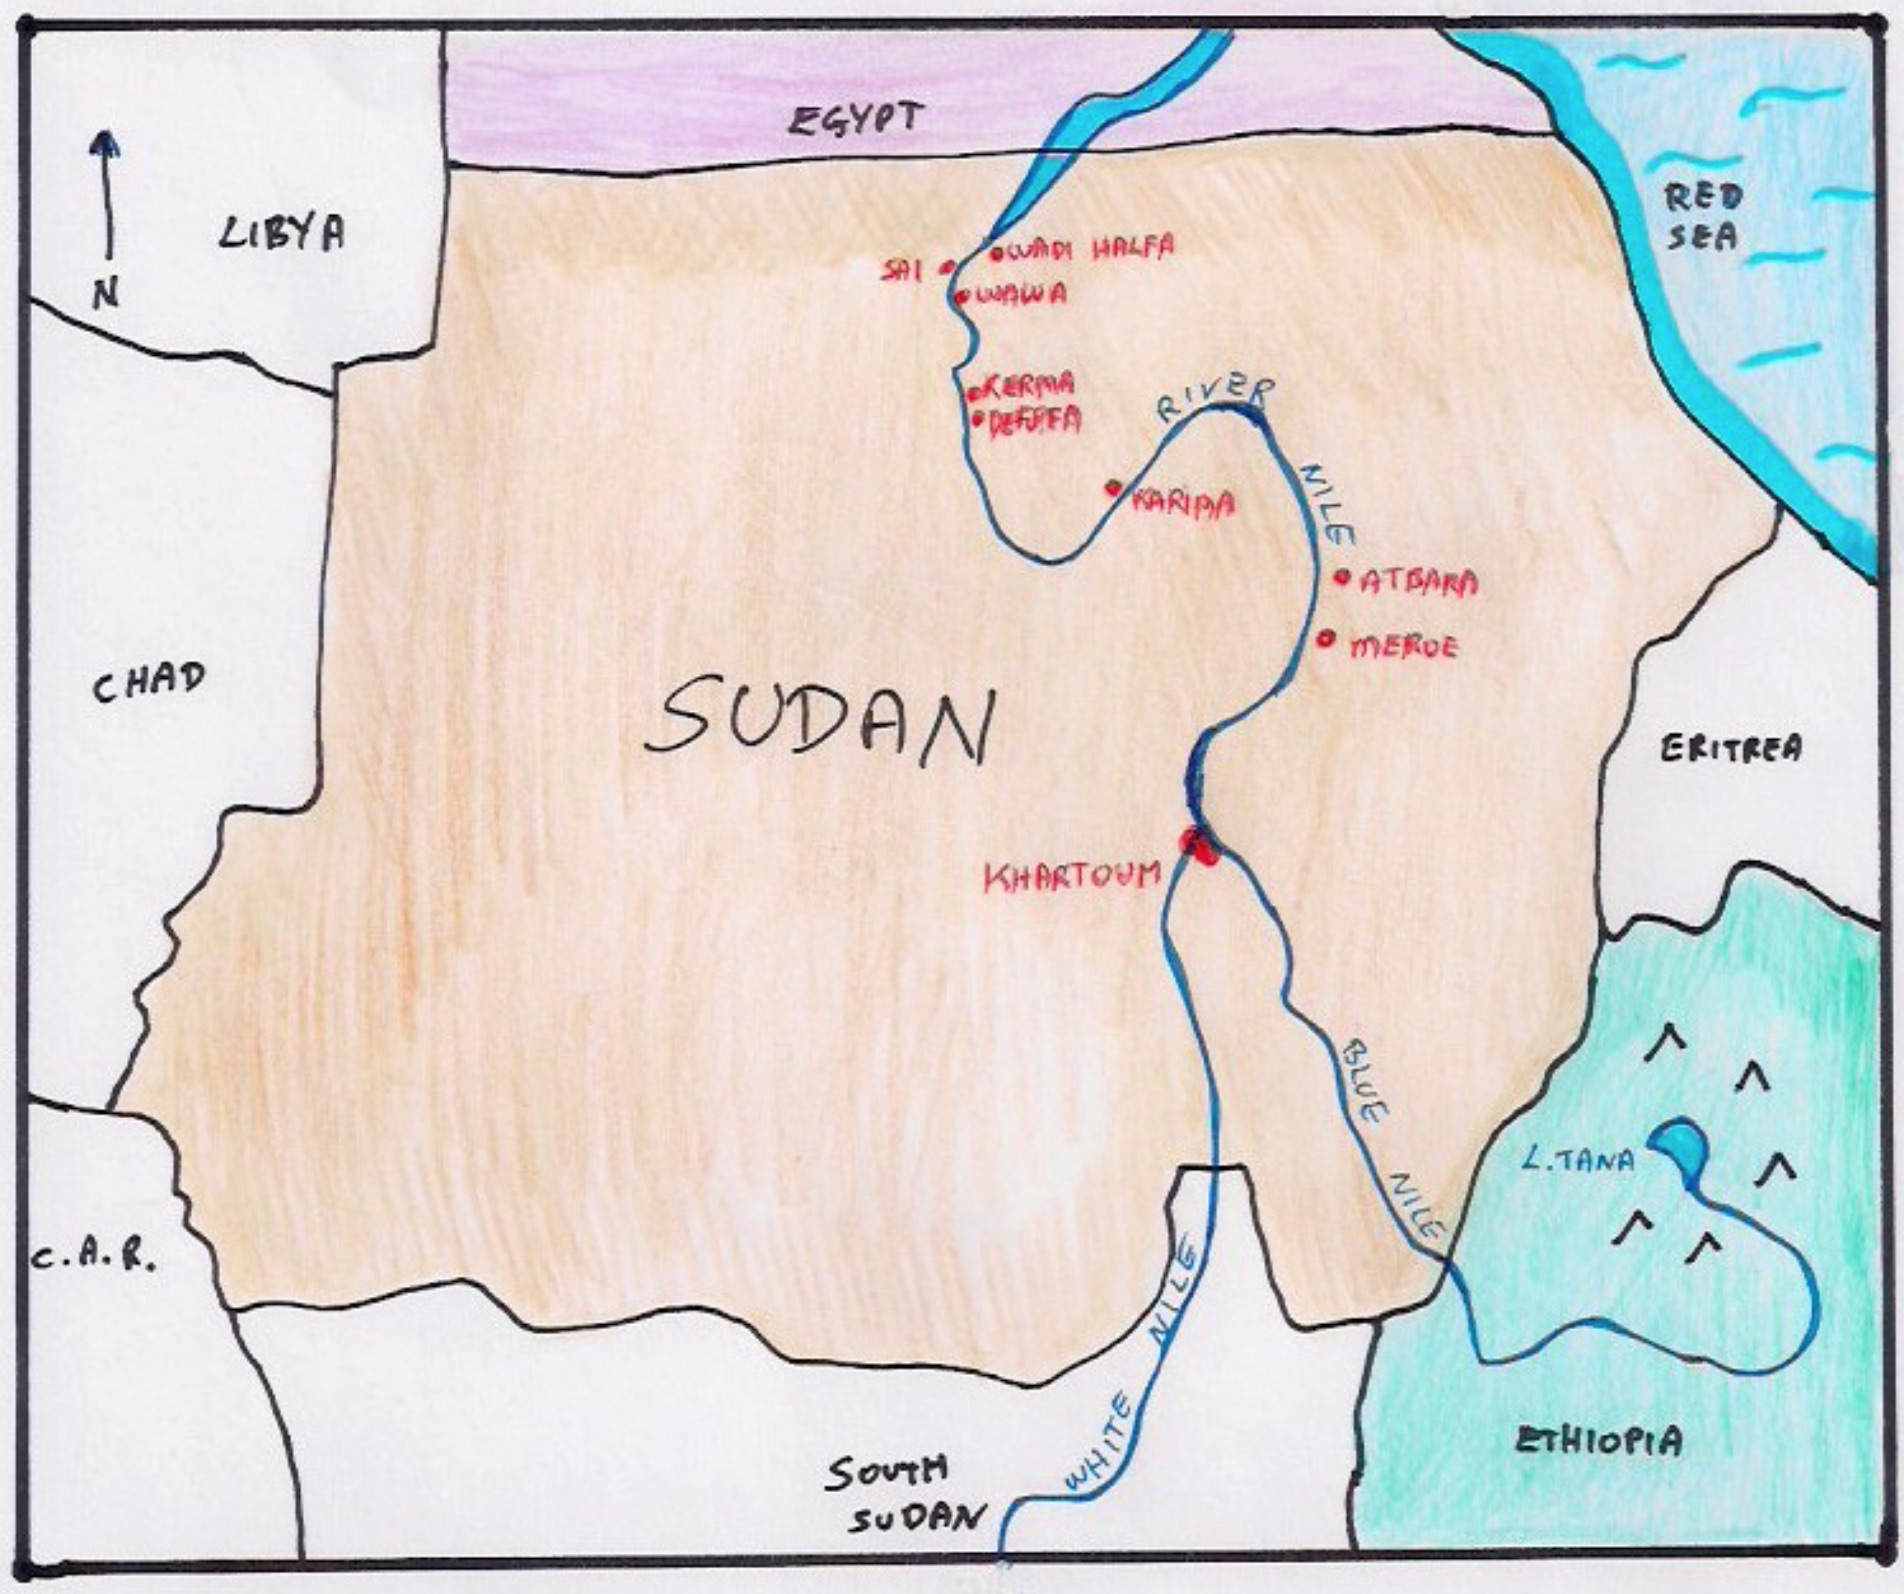 SUDAN Nile River Connections